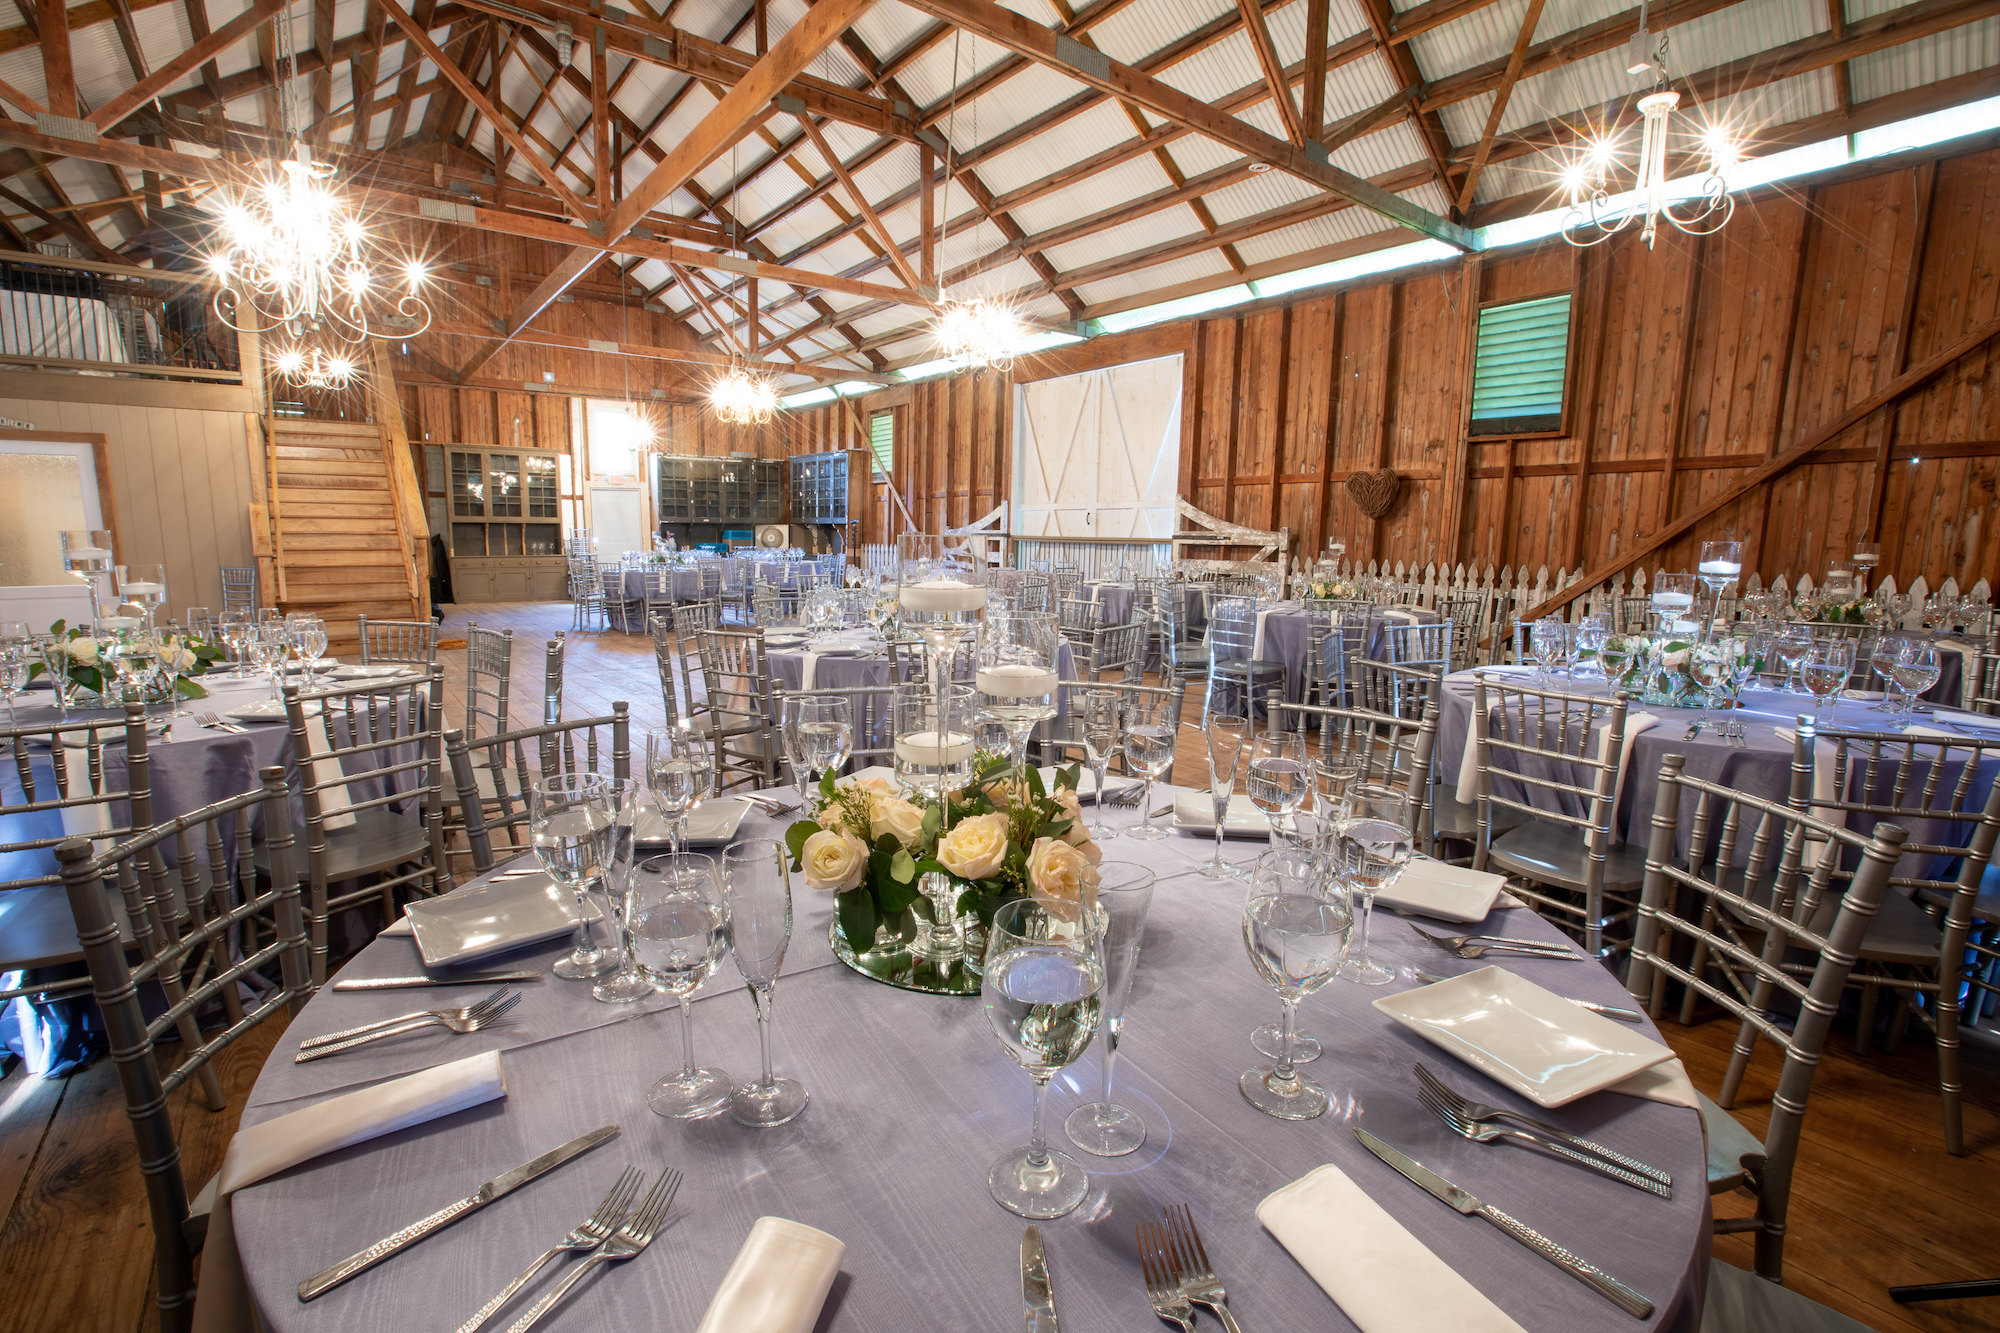 Crown Rose Barn Banquet Table